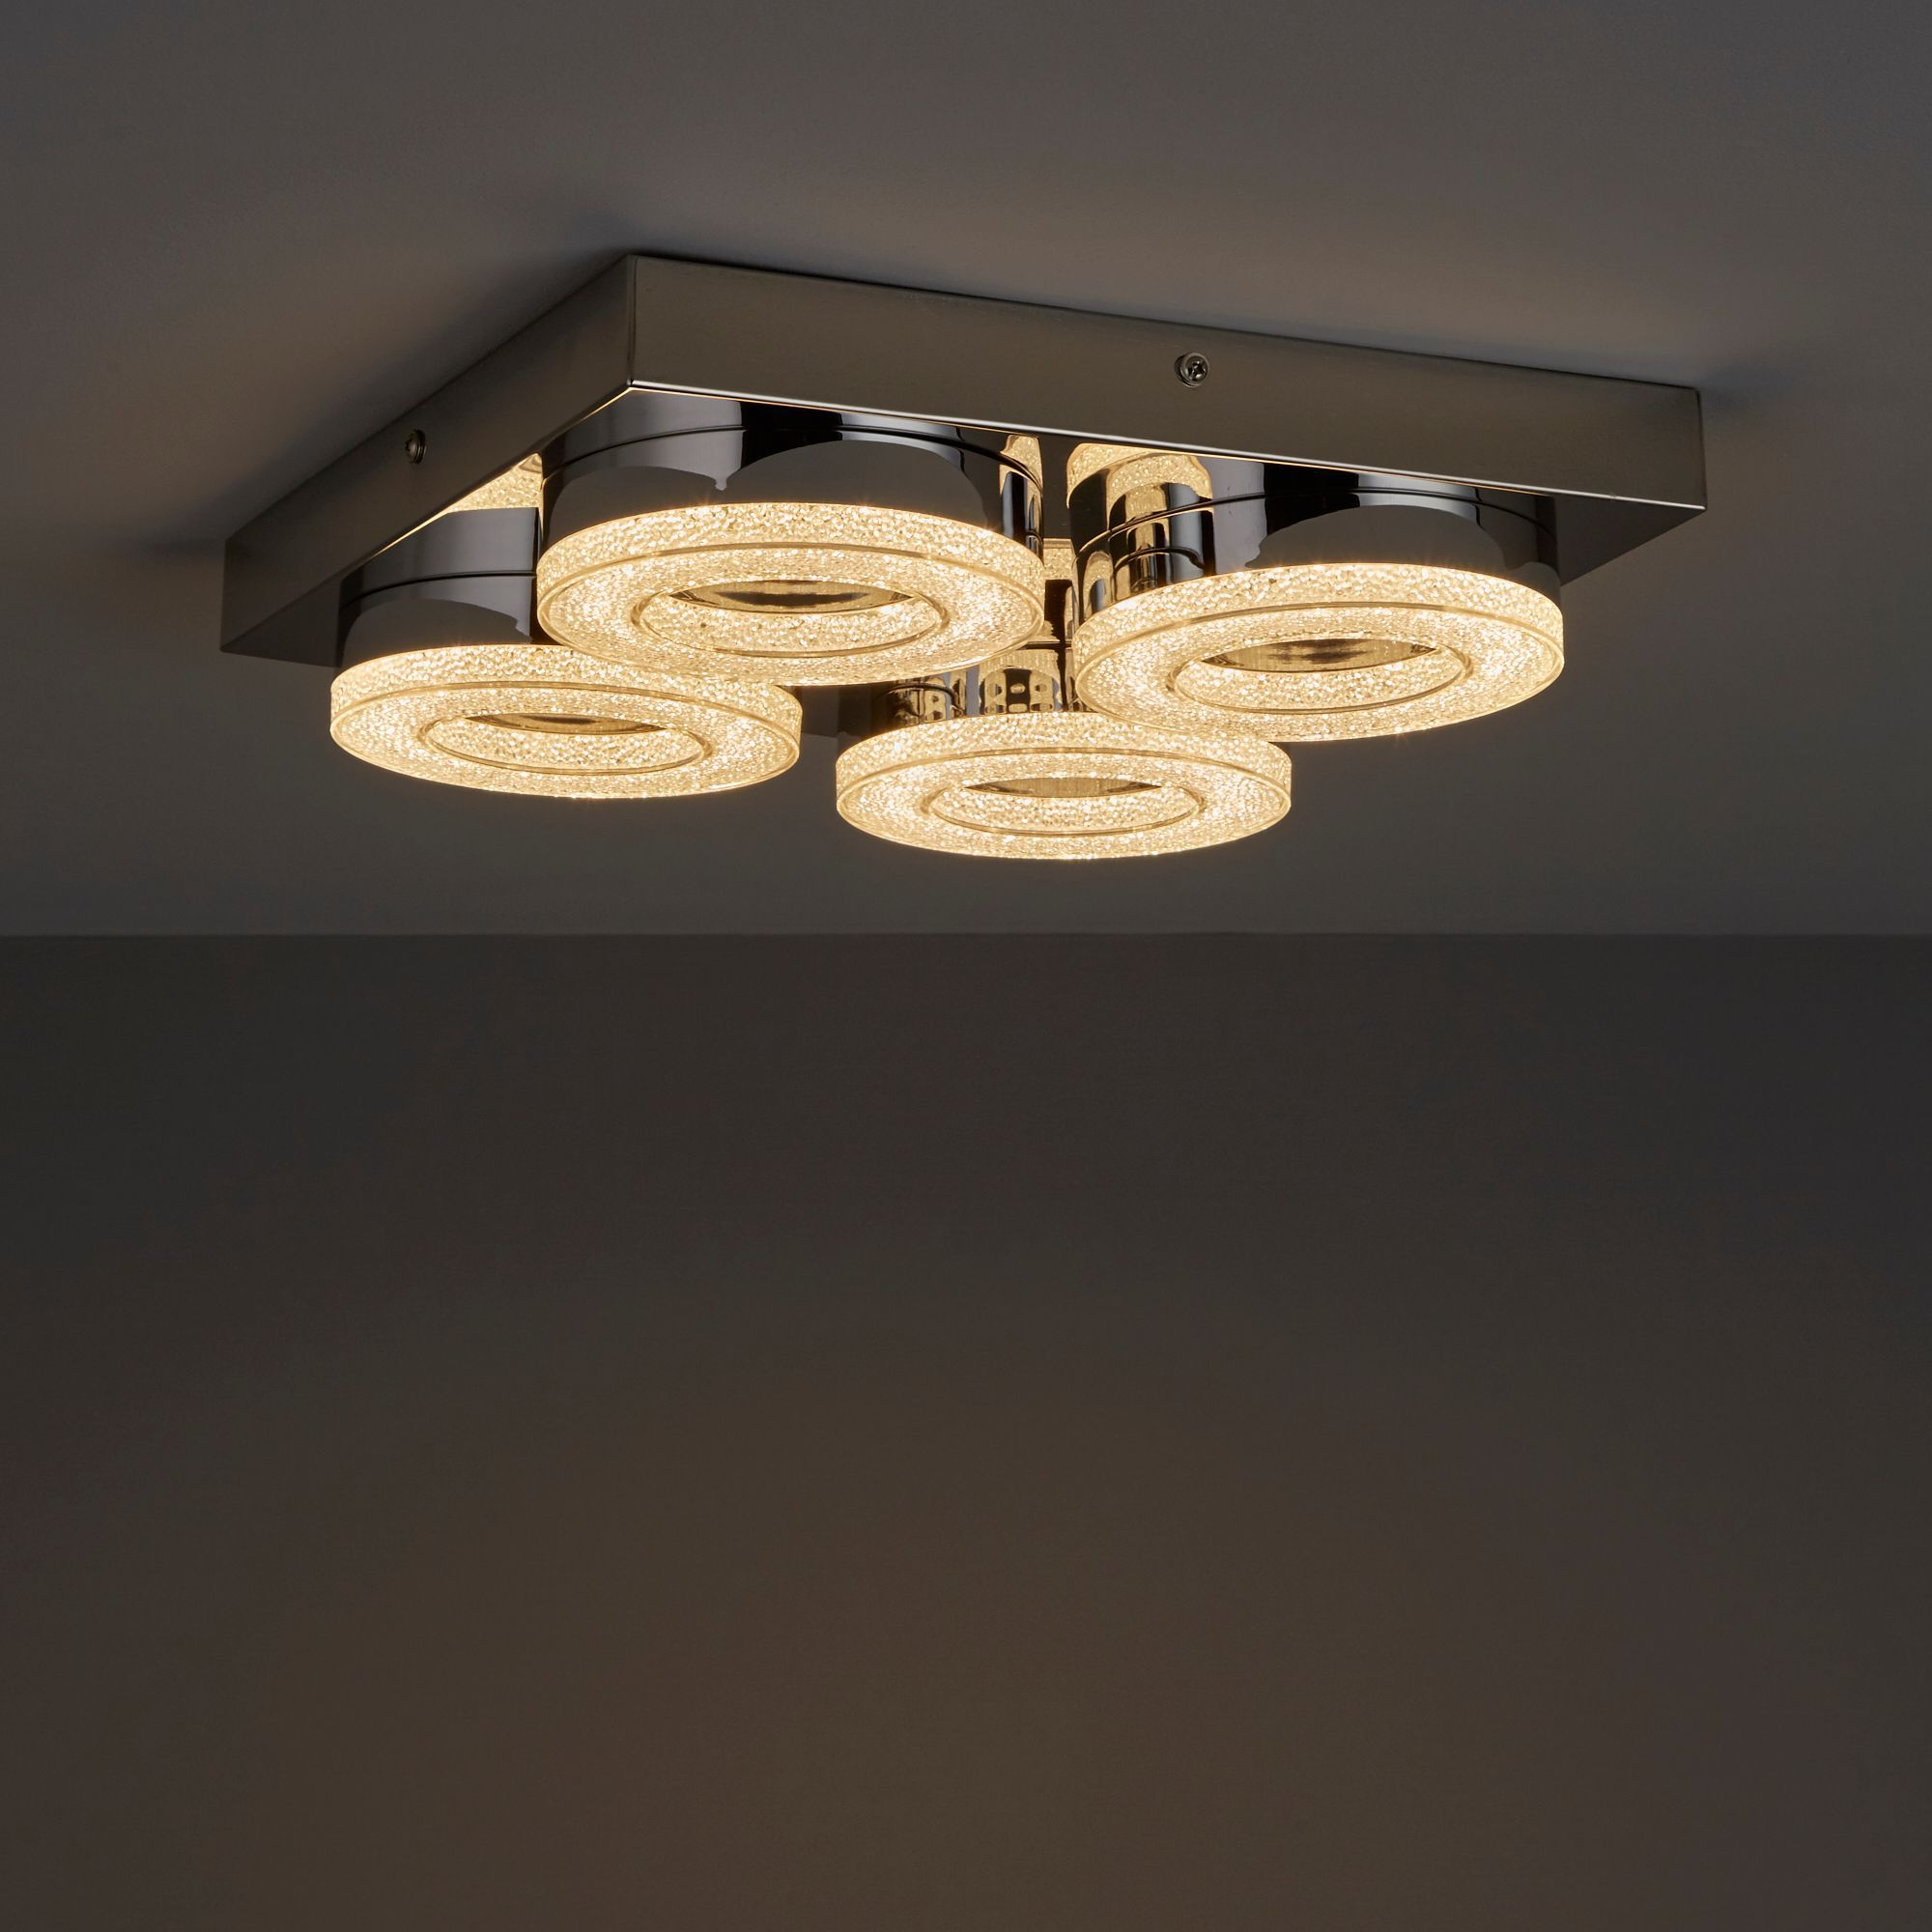 Perna Chrome Effect Ceiling Light Departments Diy At B Amp Q